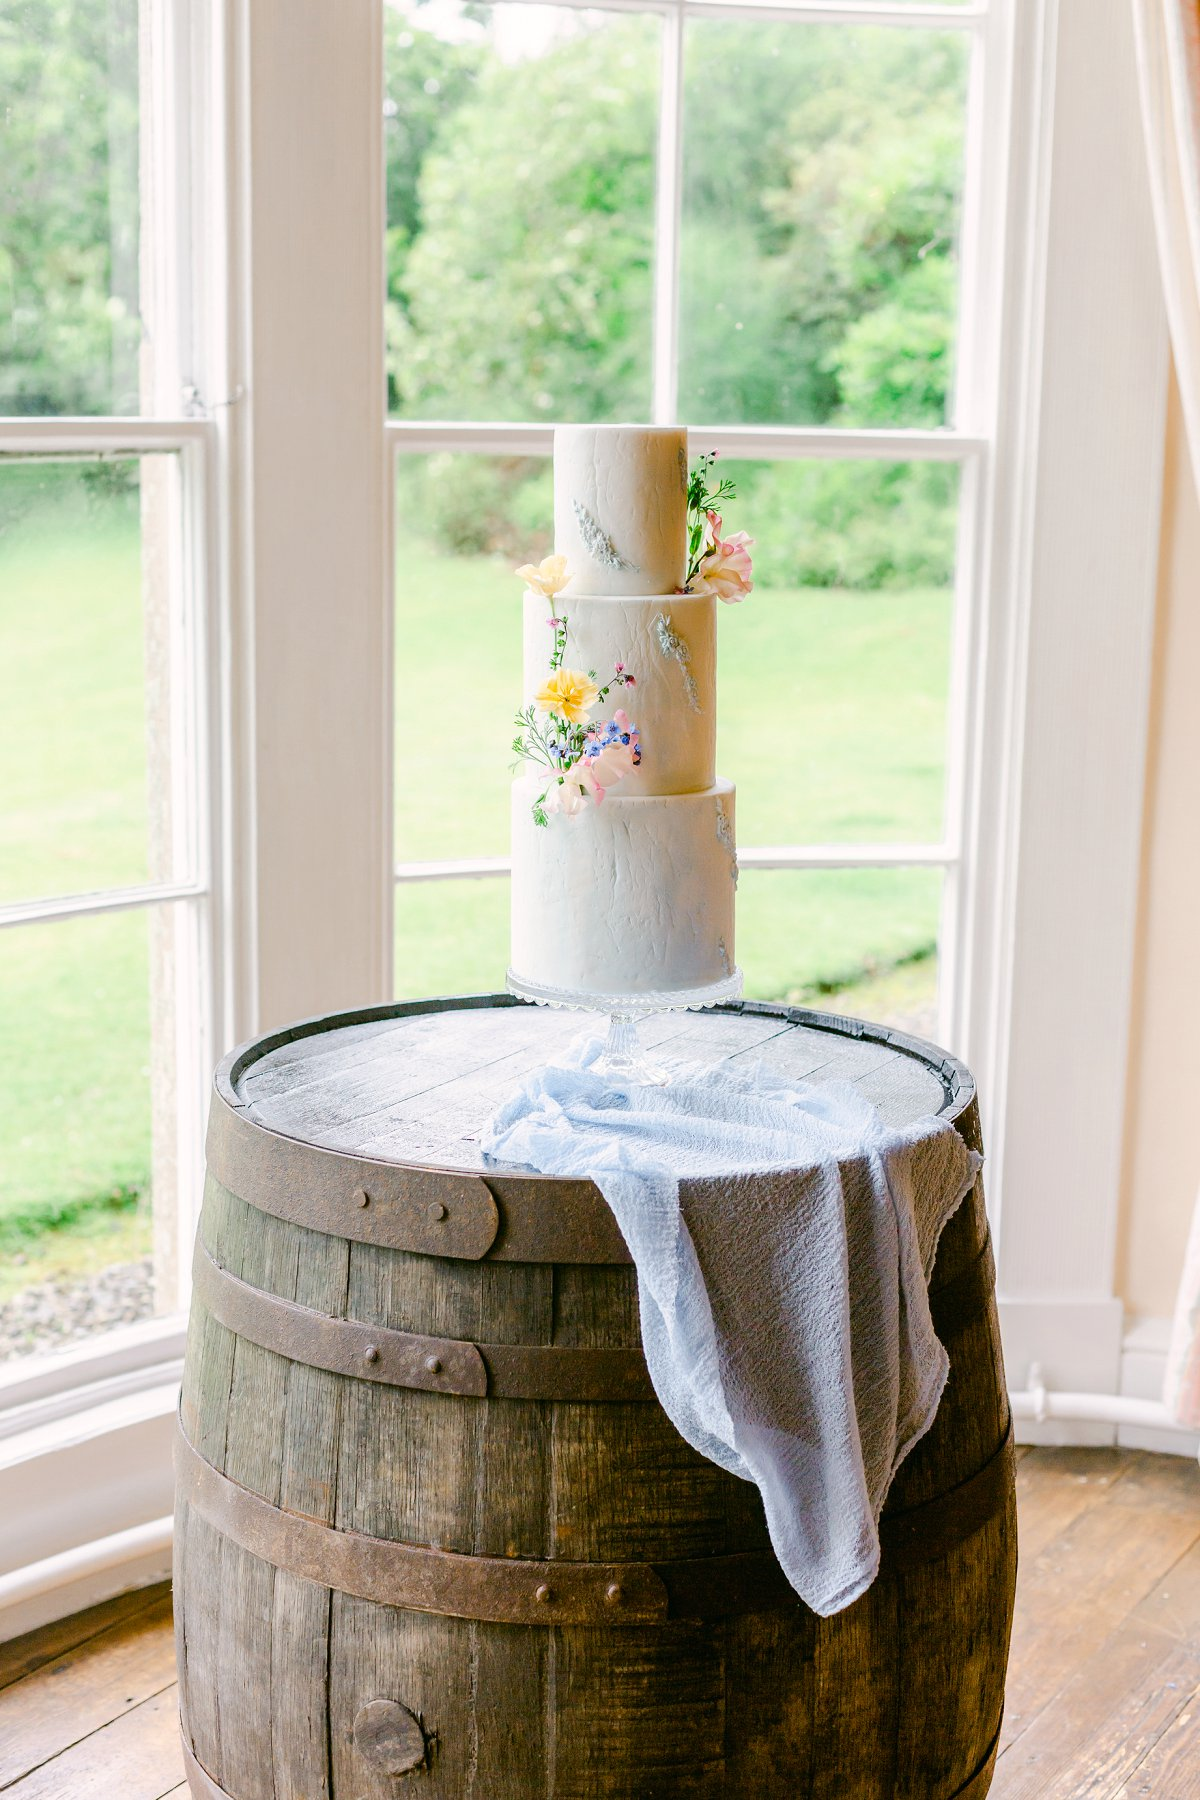 A Styled Wedding Shoot at Town Head Estate Windermere (c) Ailsa Reeve Photography (3)